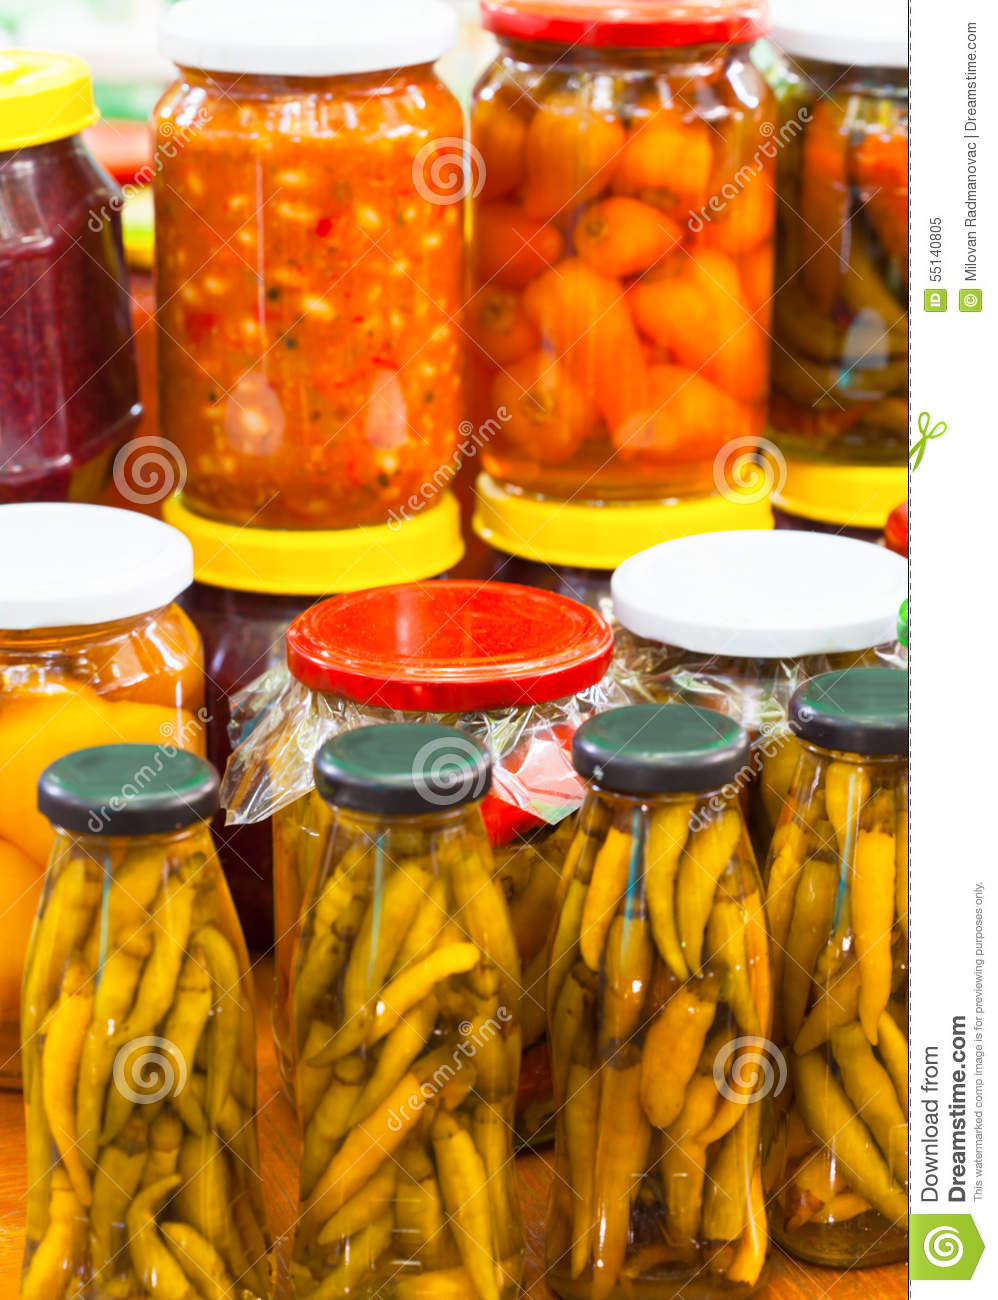 Pickled Chili Peppers In Jars Stock Photo - Image: 55140805